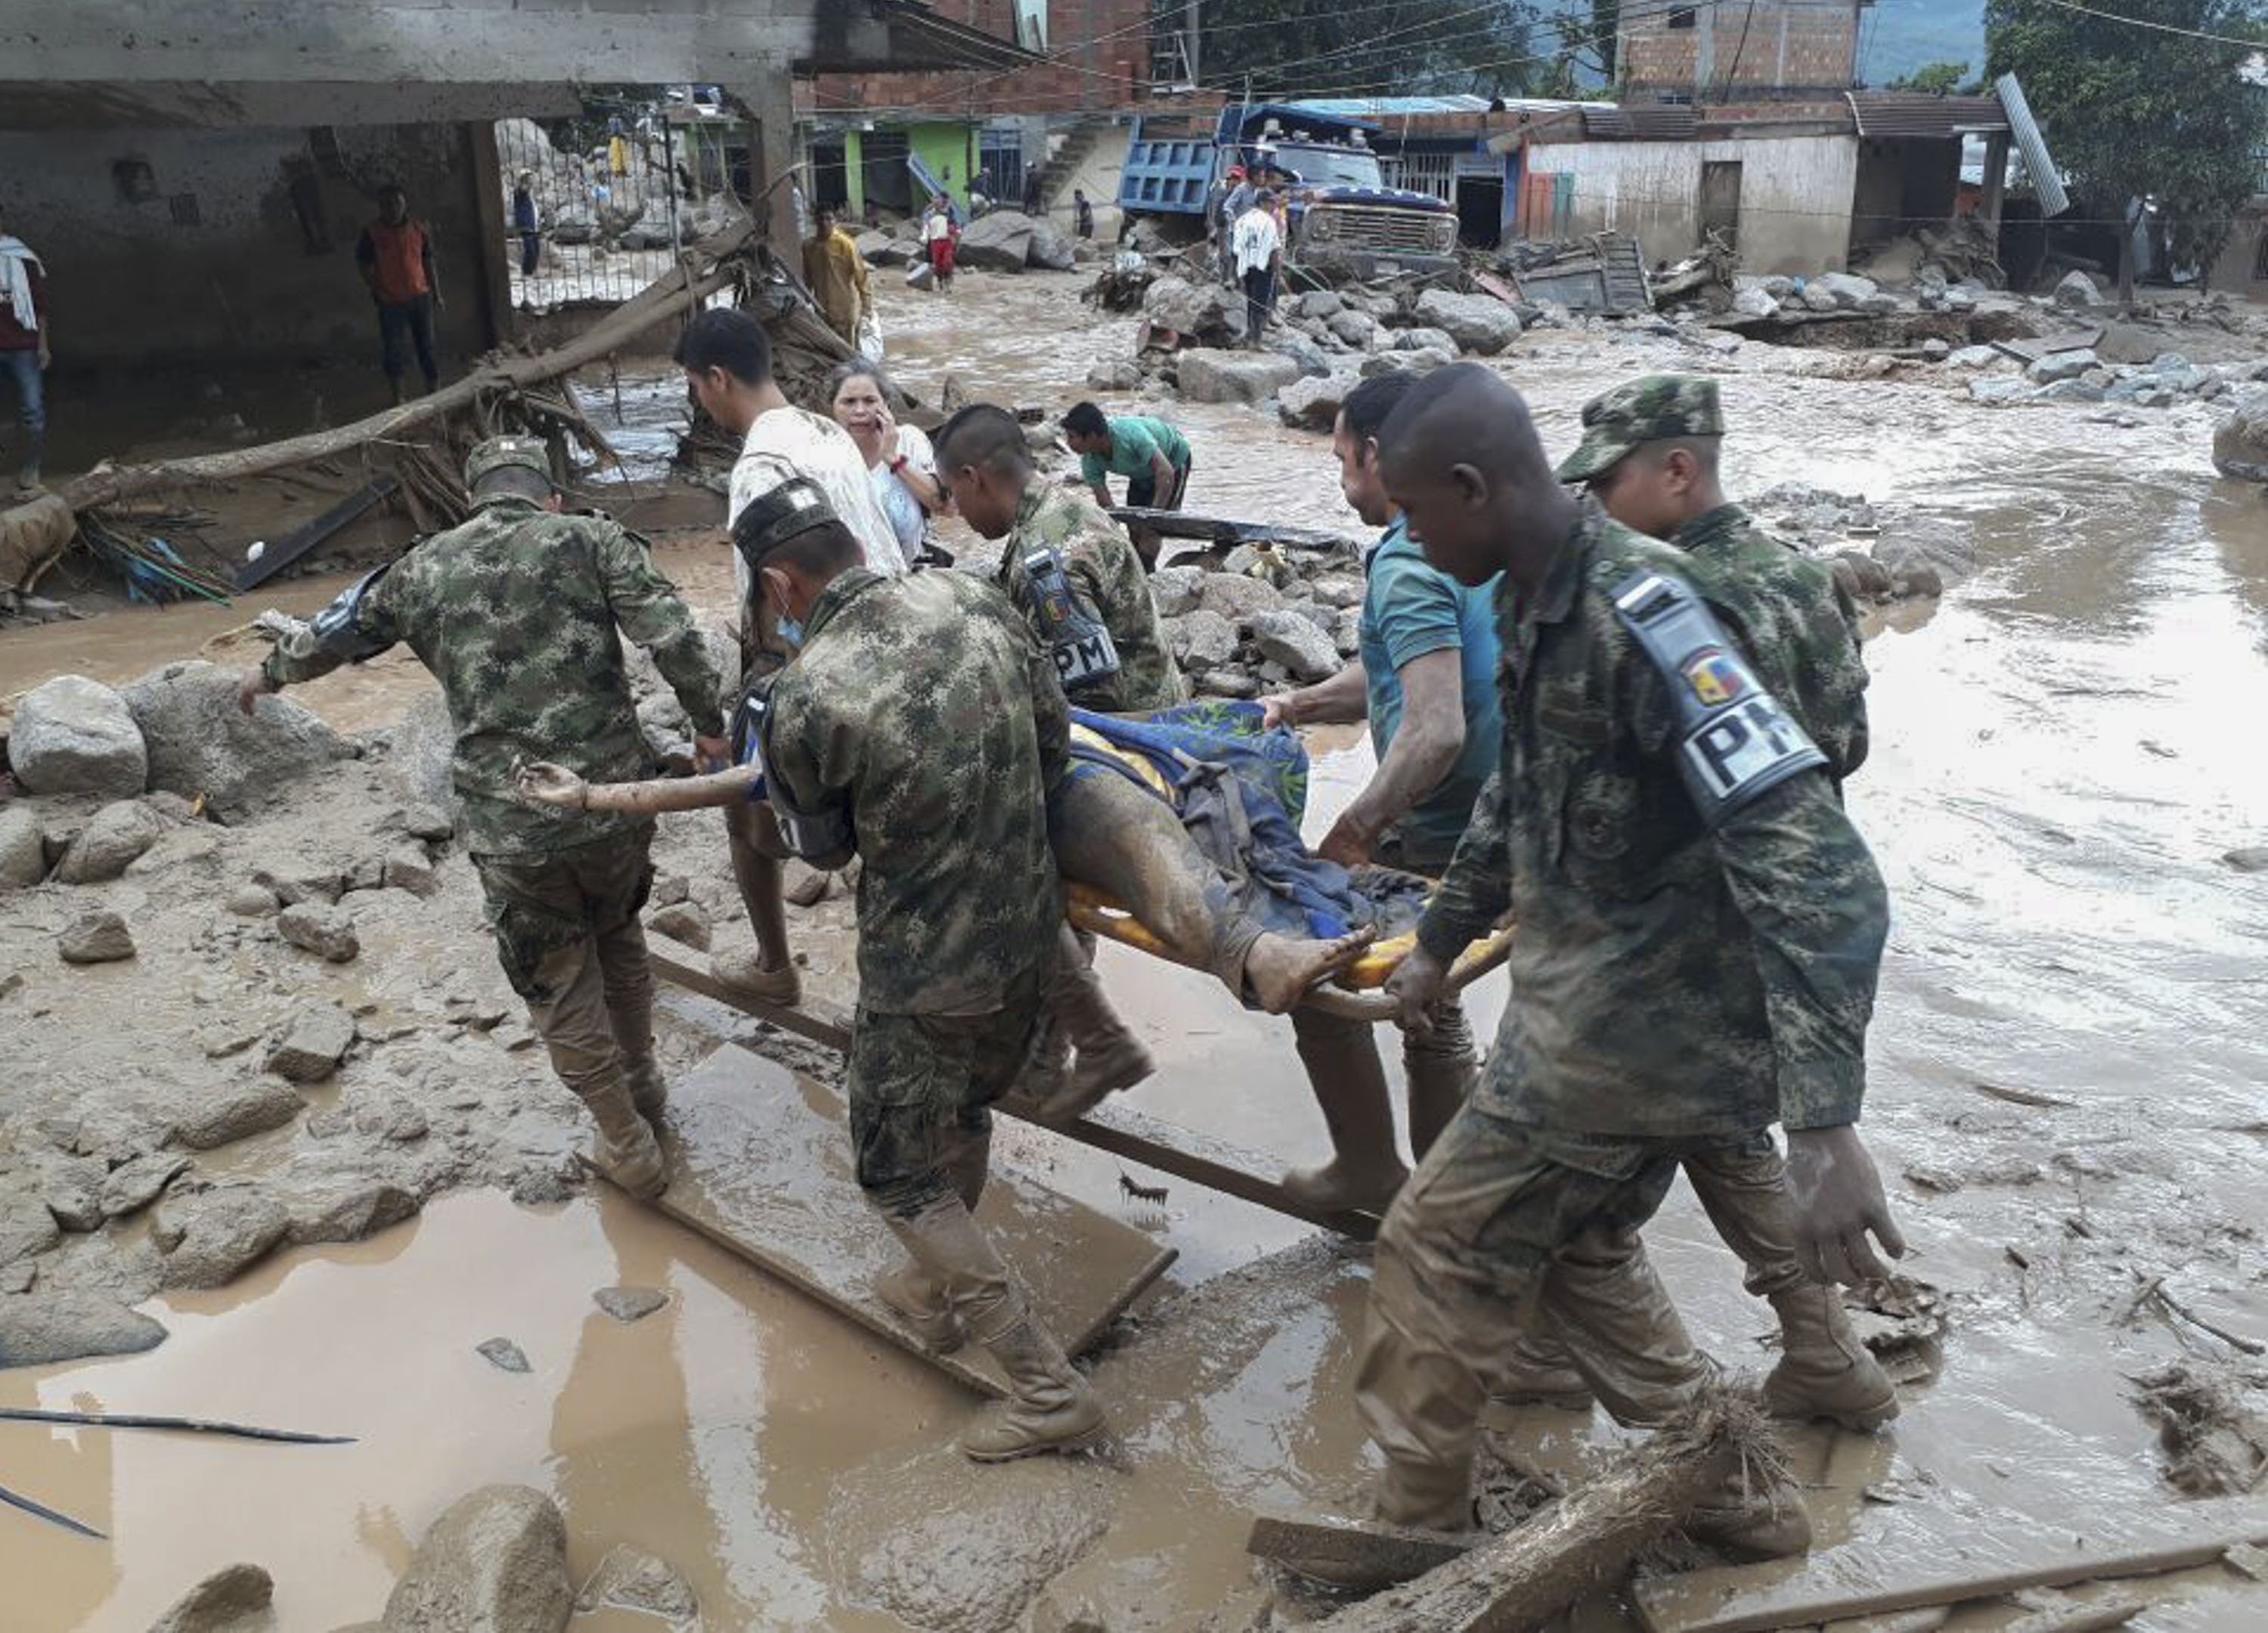 TOPSHOT - Handout picture released by the Colombian Army press office showing soldiers carrying a corpse following mudslides caused by heavy rains, in Mocoa, Putumayo department, on April 1, 2017. Mudslides in southern Colombia -caused by the rise of the Mocoa River and three tributaries- have claimed at least 16 lives and injured some 65 people following recent torrential rains, the authorities said. / AFP PHOTO / EJERCITO DE COLOMBIA / HO / RESTRICTED TO EDITORIAL USE - MANDATORY CREDIT AFP PHOTO / EJERCITO DE COLOMBIA - NO MARKETING - NO ADVERTISING CAMPAIGNS - DISTRIBUTED AS A SERVICE TO CLIENTS / TT / kod 444